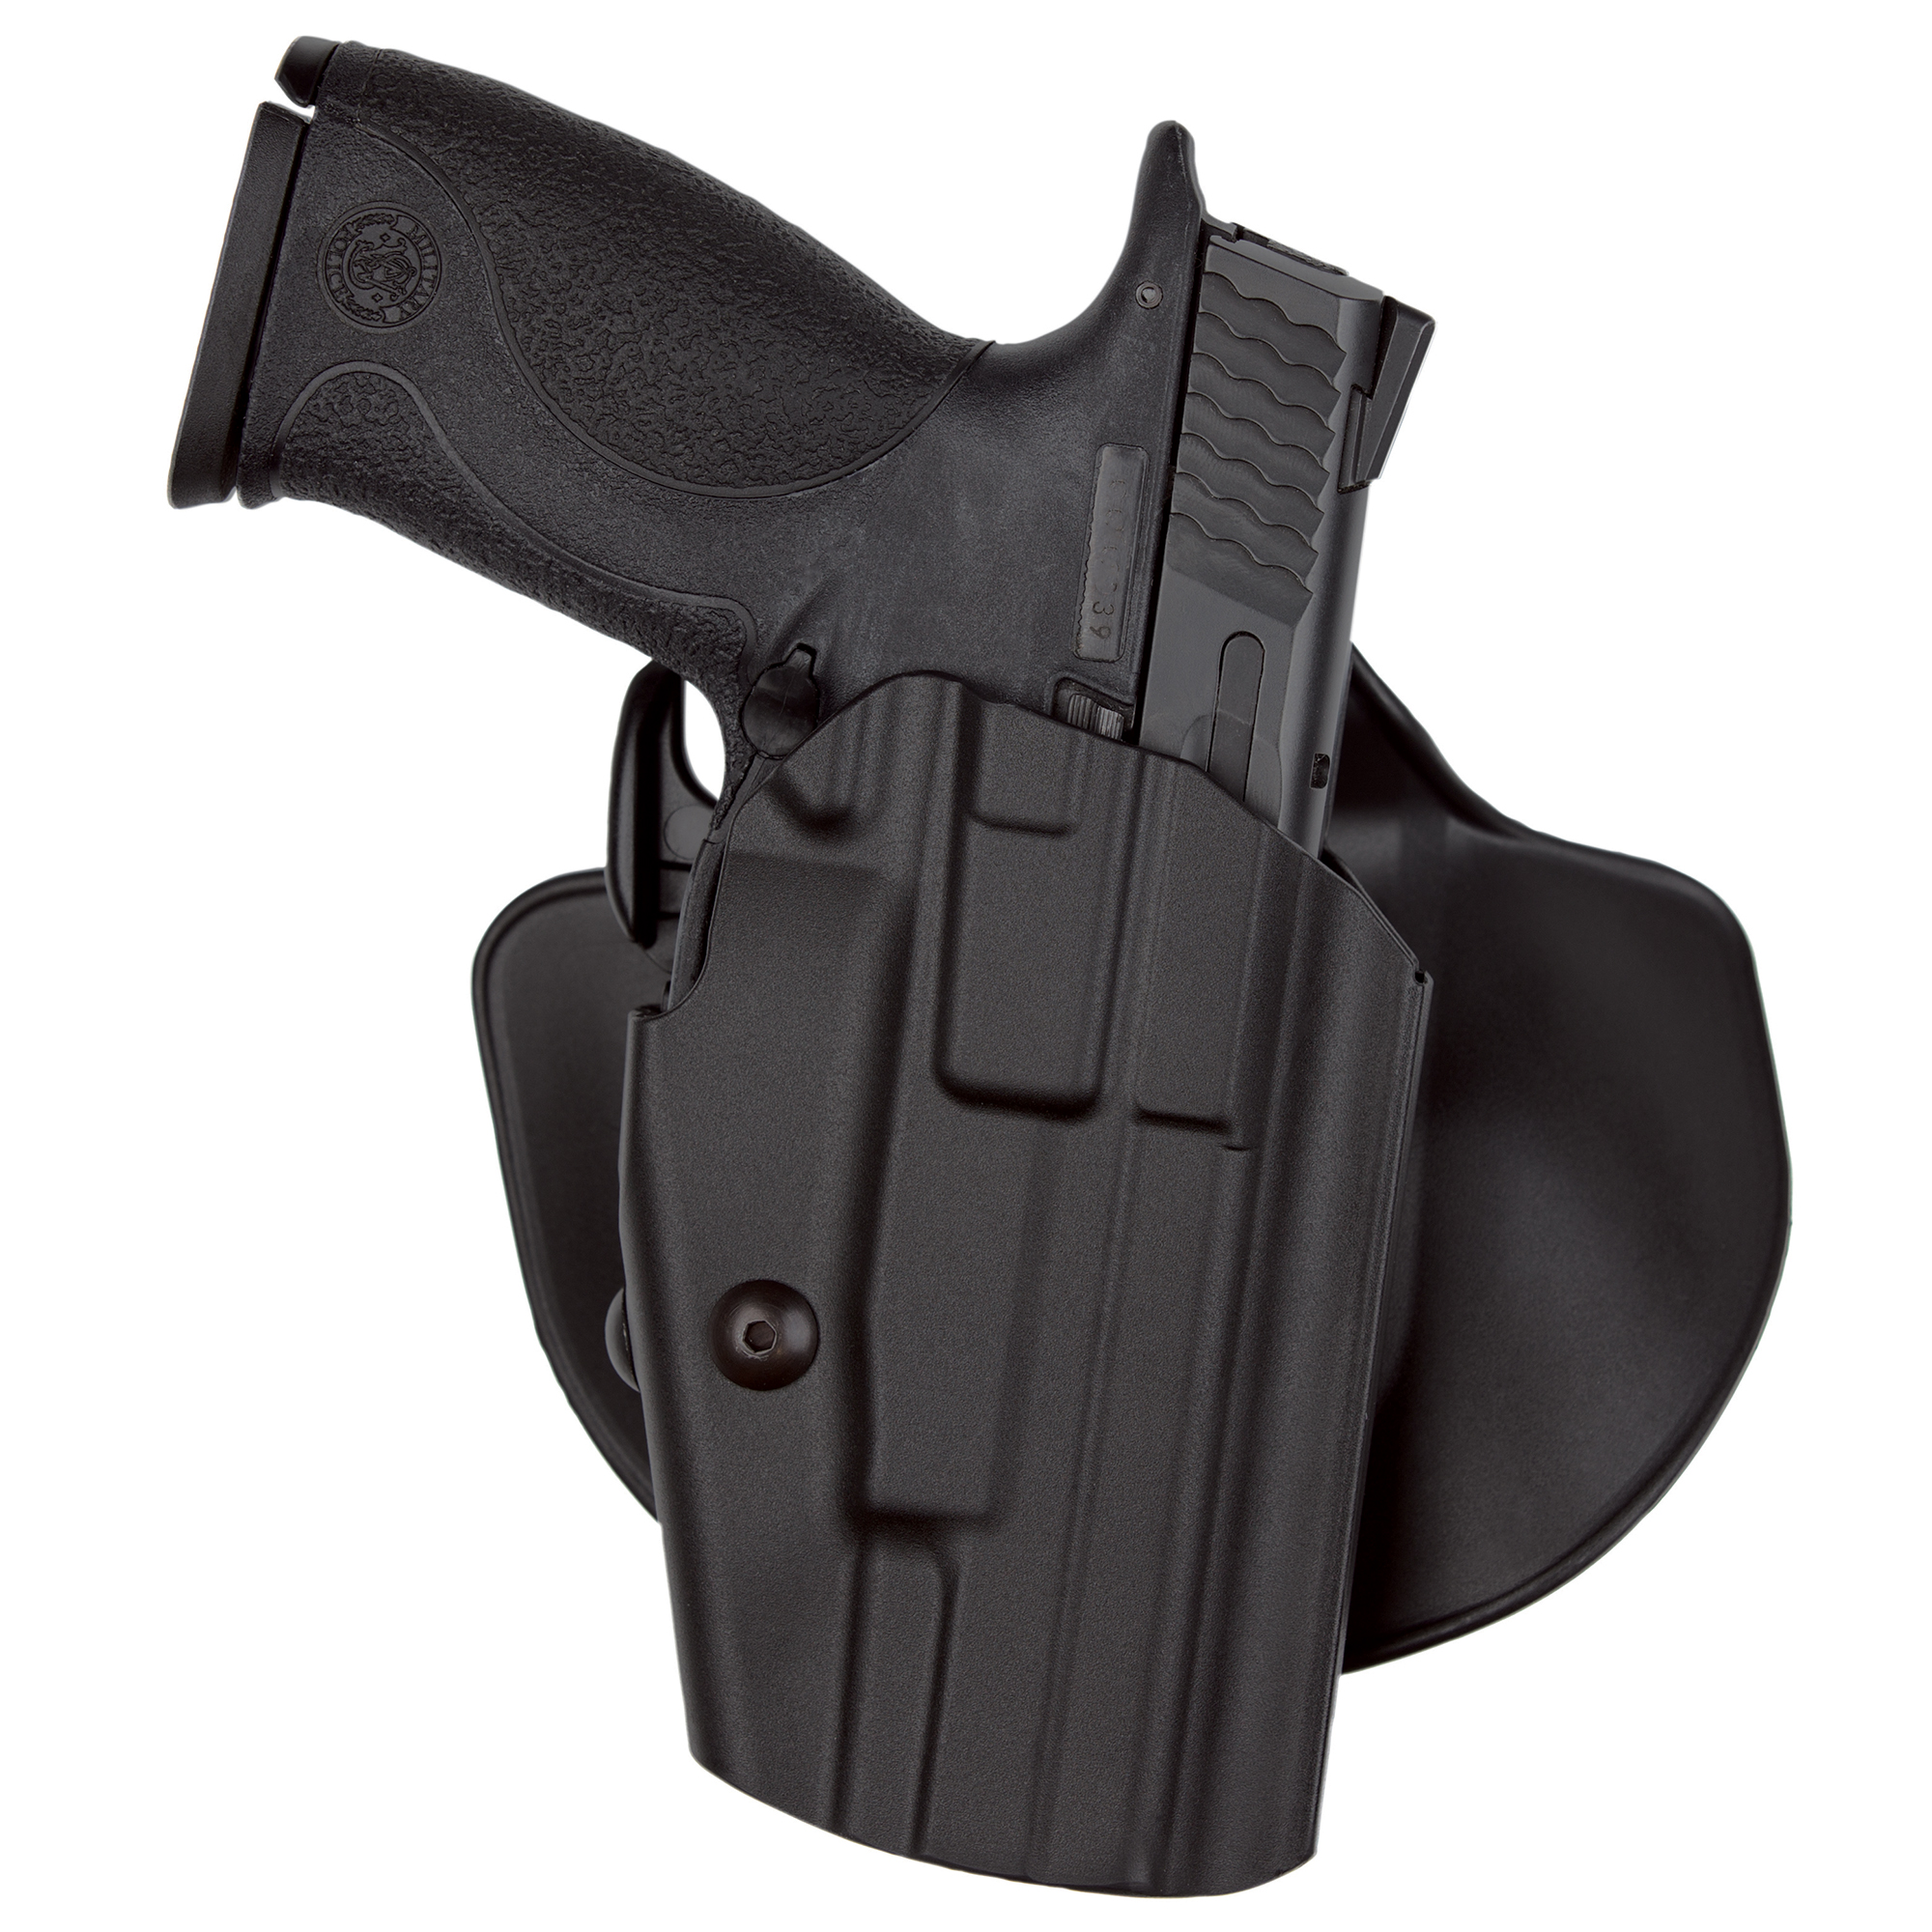 Safariland Model 578 GLS Pro-Fit Paddle Holster, Sub-Compact